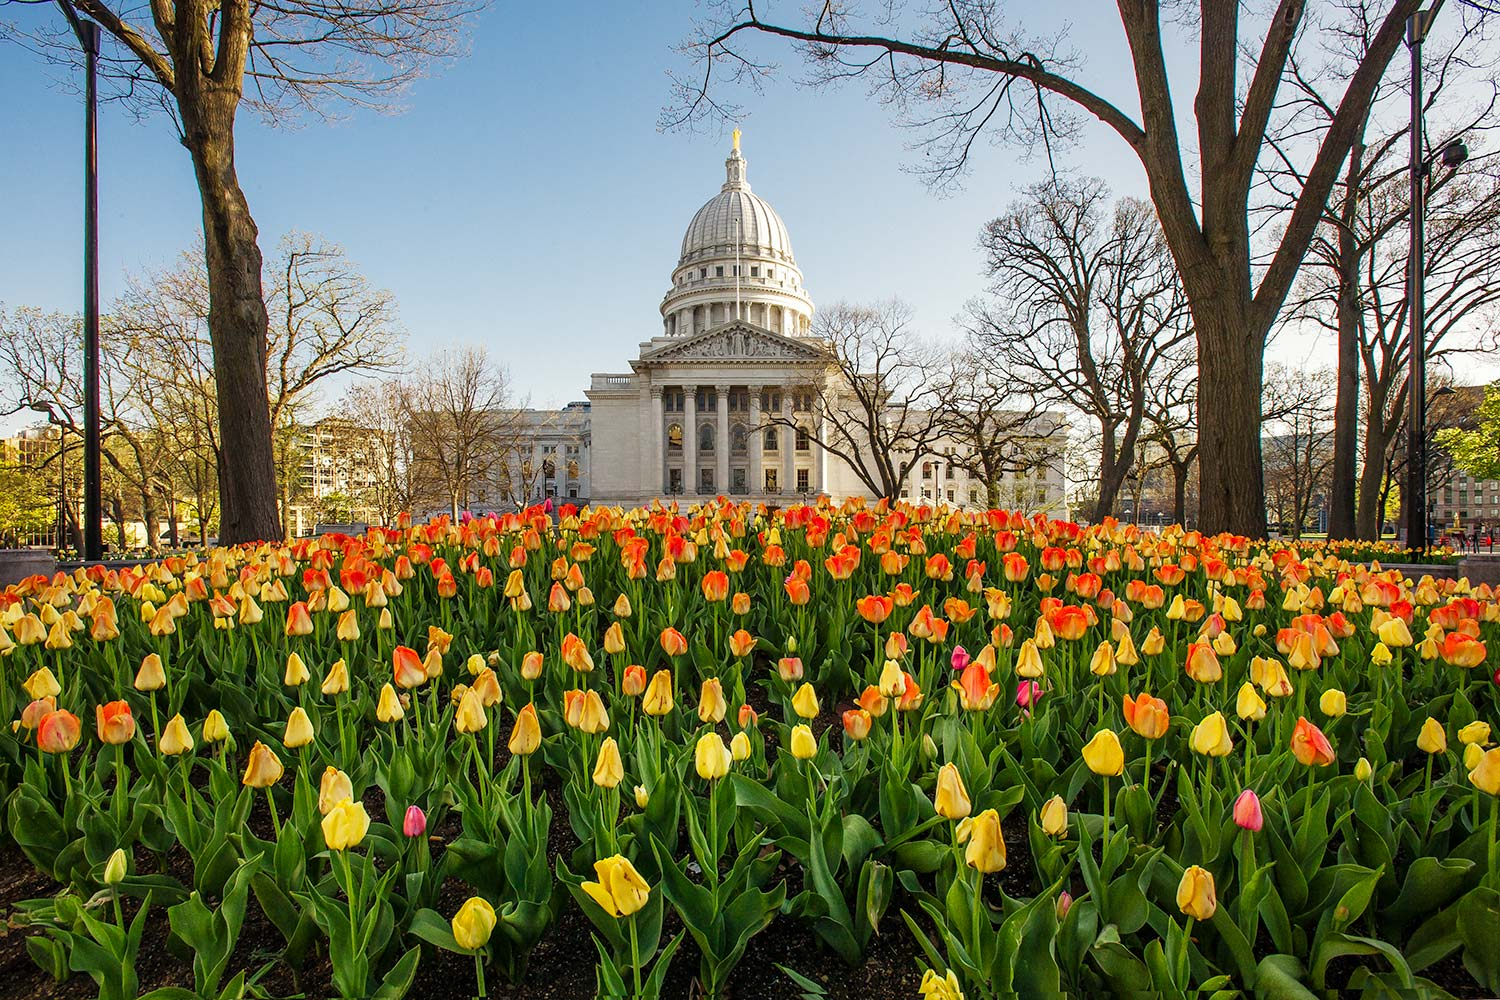 Tulips blooming in sprig near the Wisconsin State Capitol on the sqare in Madison, Wisconsin.